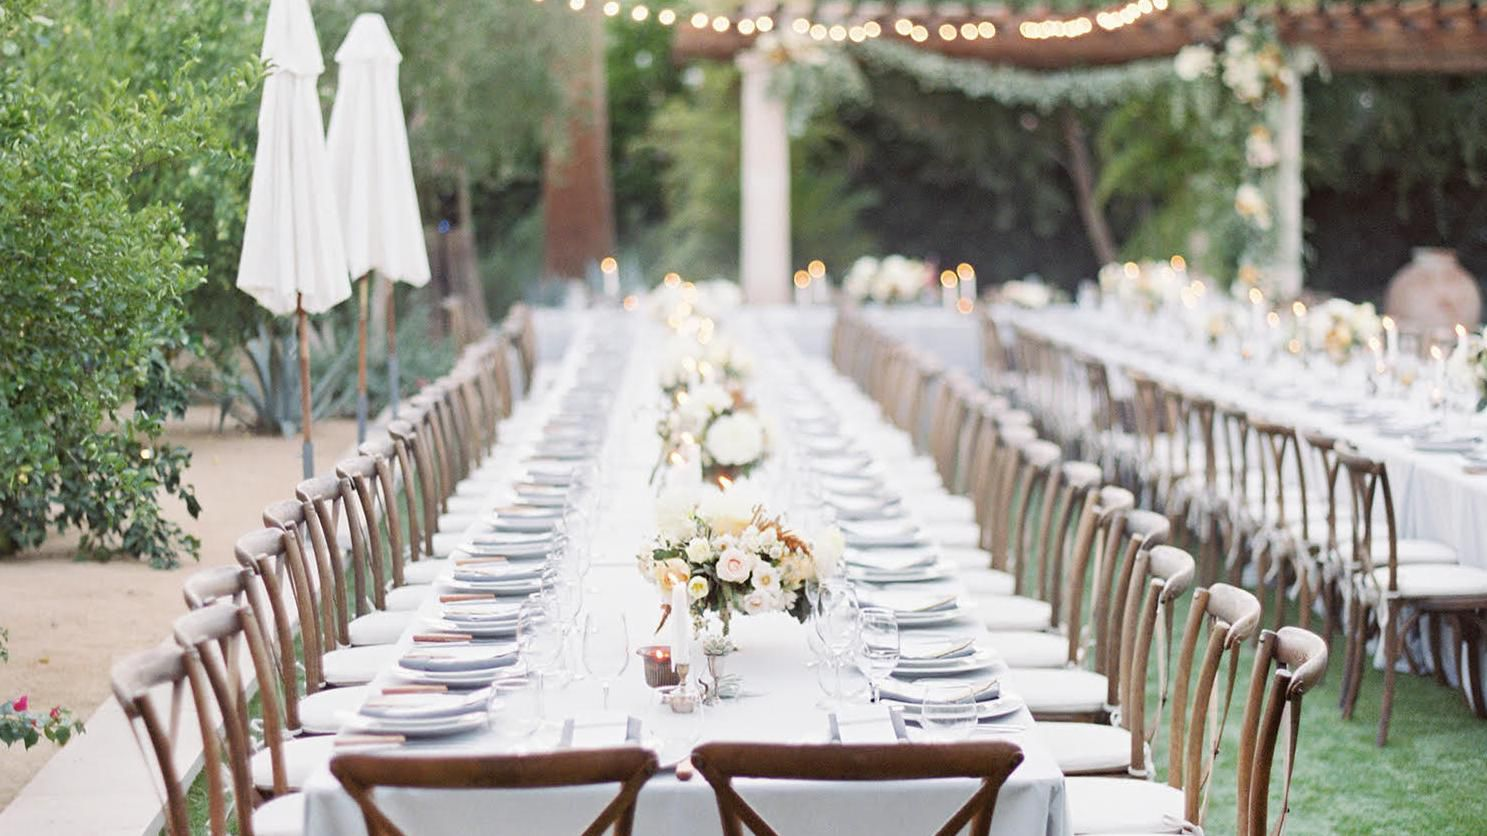 23 Beautiful Banquet Style Tables For Your Wedding Reception